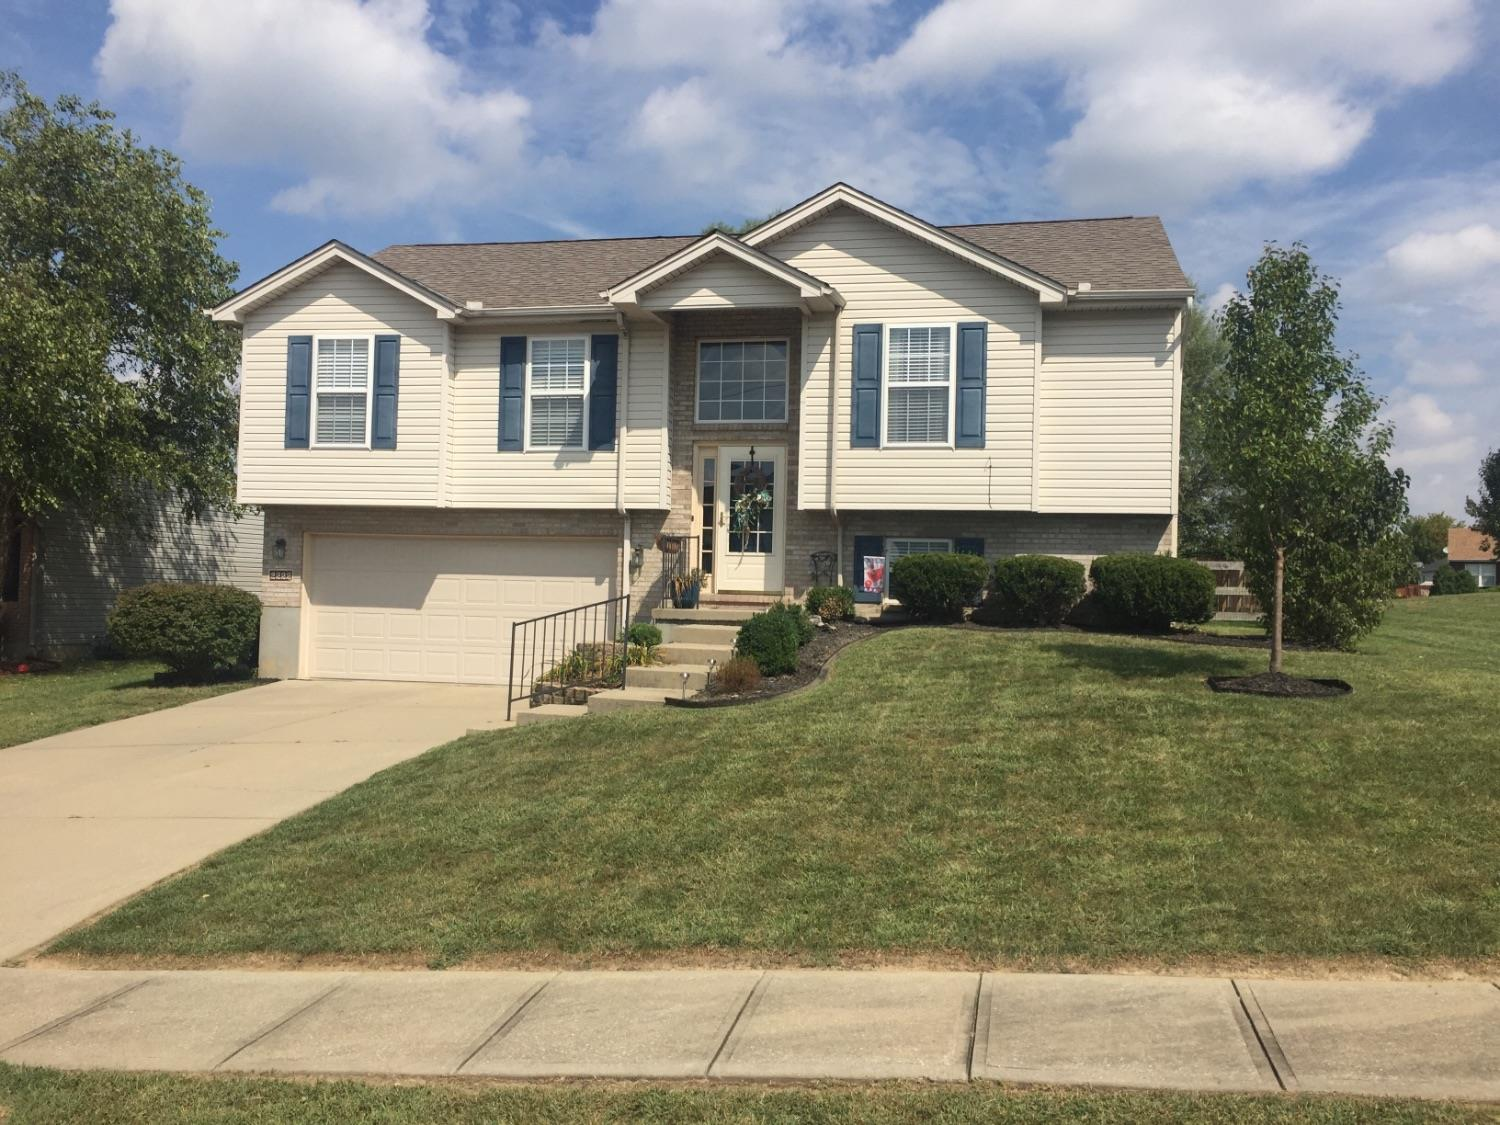 Photo 1 for 2222 Morrison Ct Covington, KY 41017